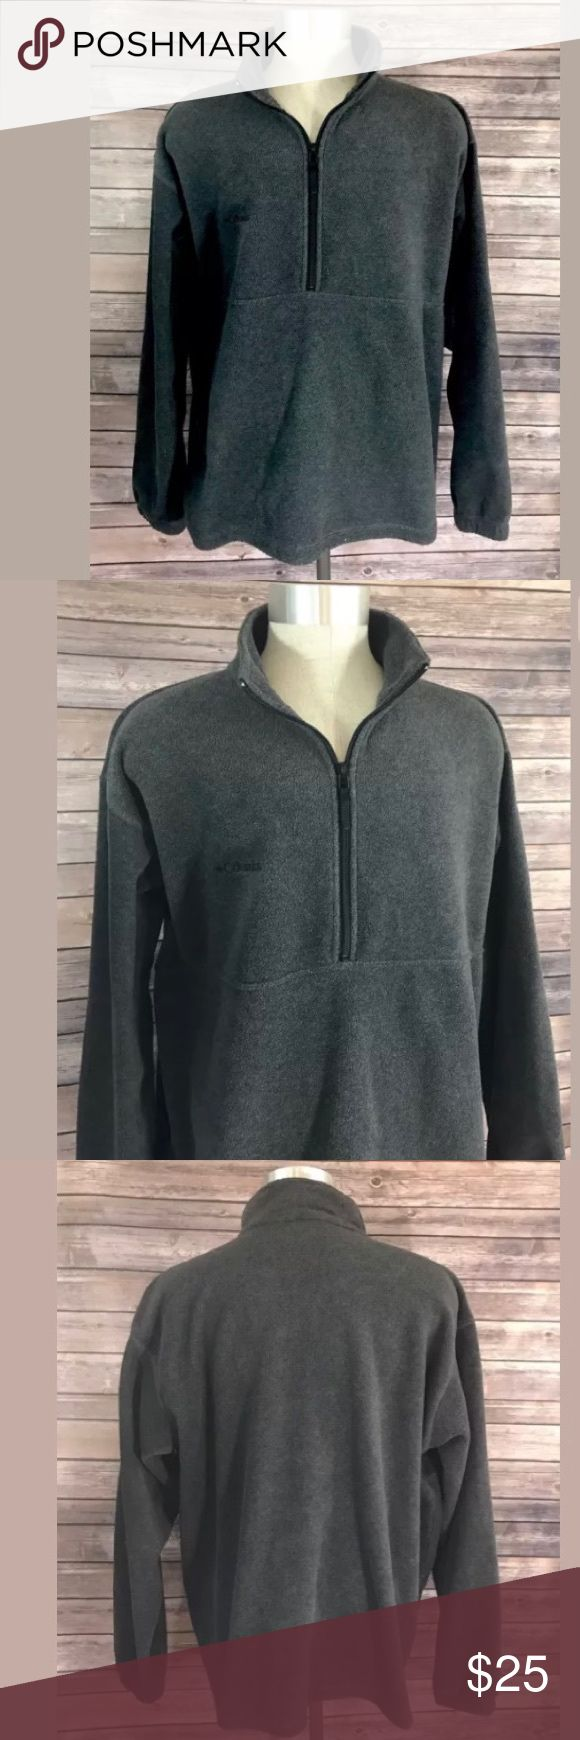 Columbia Fleece Jacket Mens Size XL Gray Half Zip Columbia Fleece Jacket Mens Size XL Gray Half Zip Pullover Outerwear. Measurements: (in inches) Underarm to underarm: 27 Length: 27.5 Columbia Jackets & Coats Ski & Snowboard